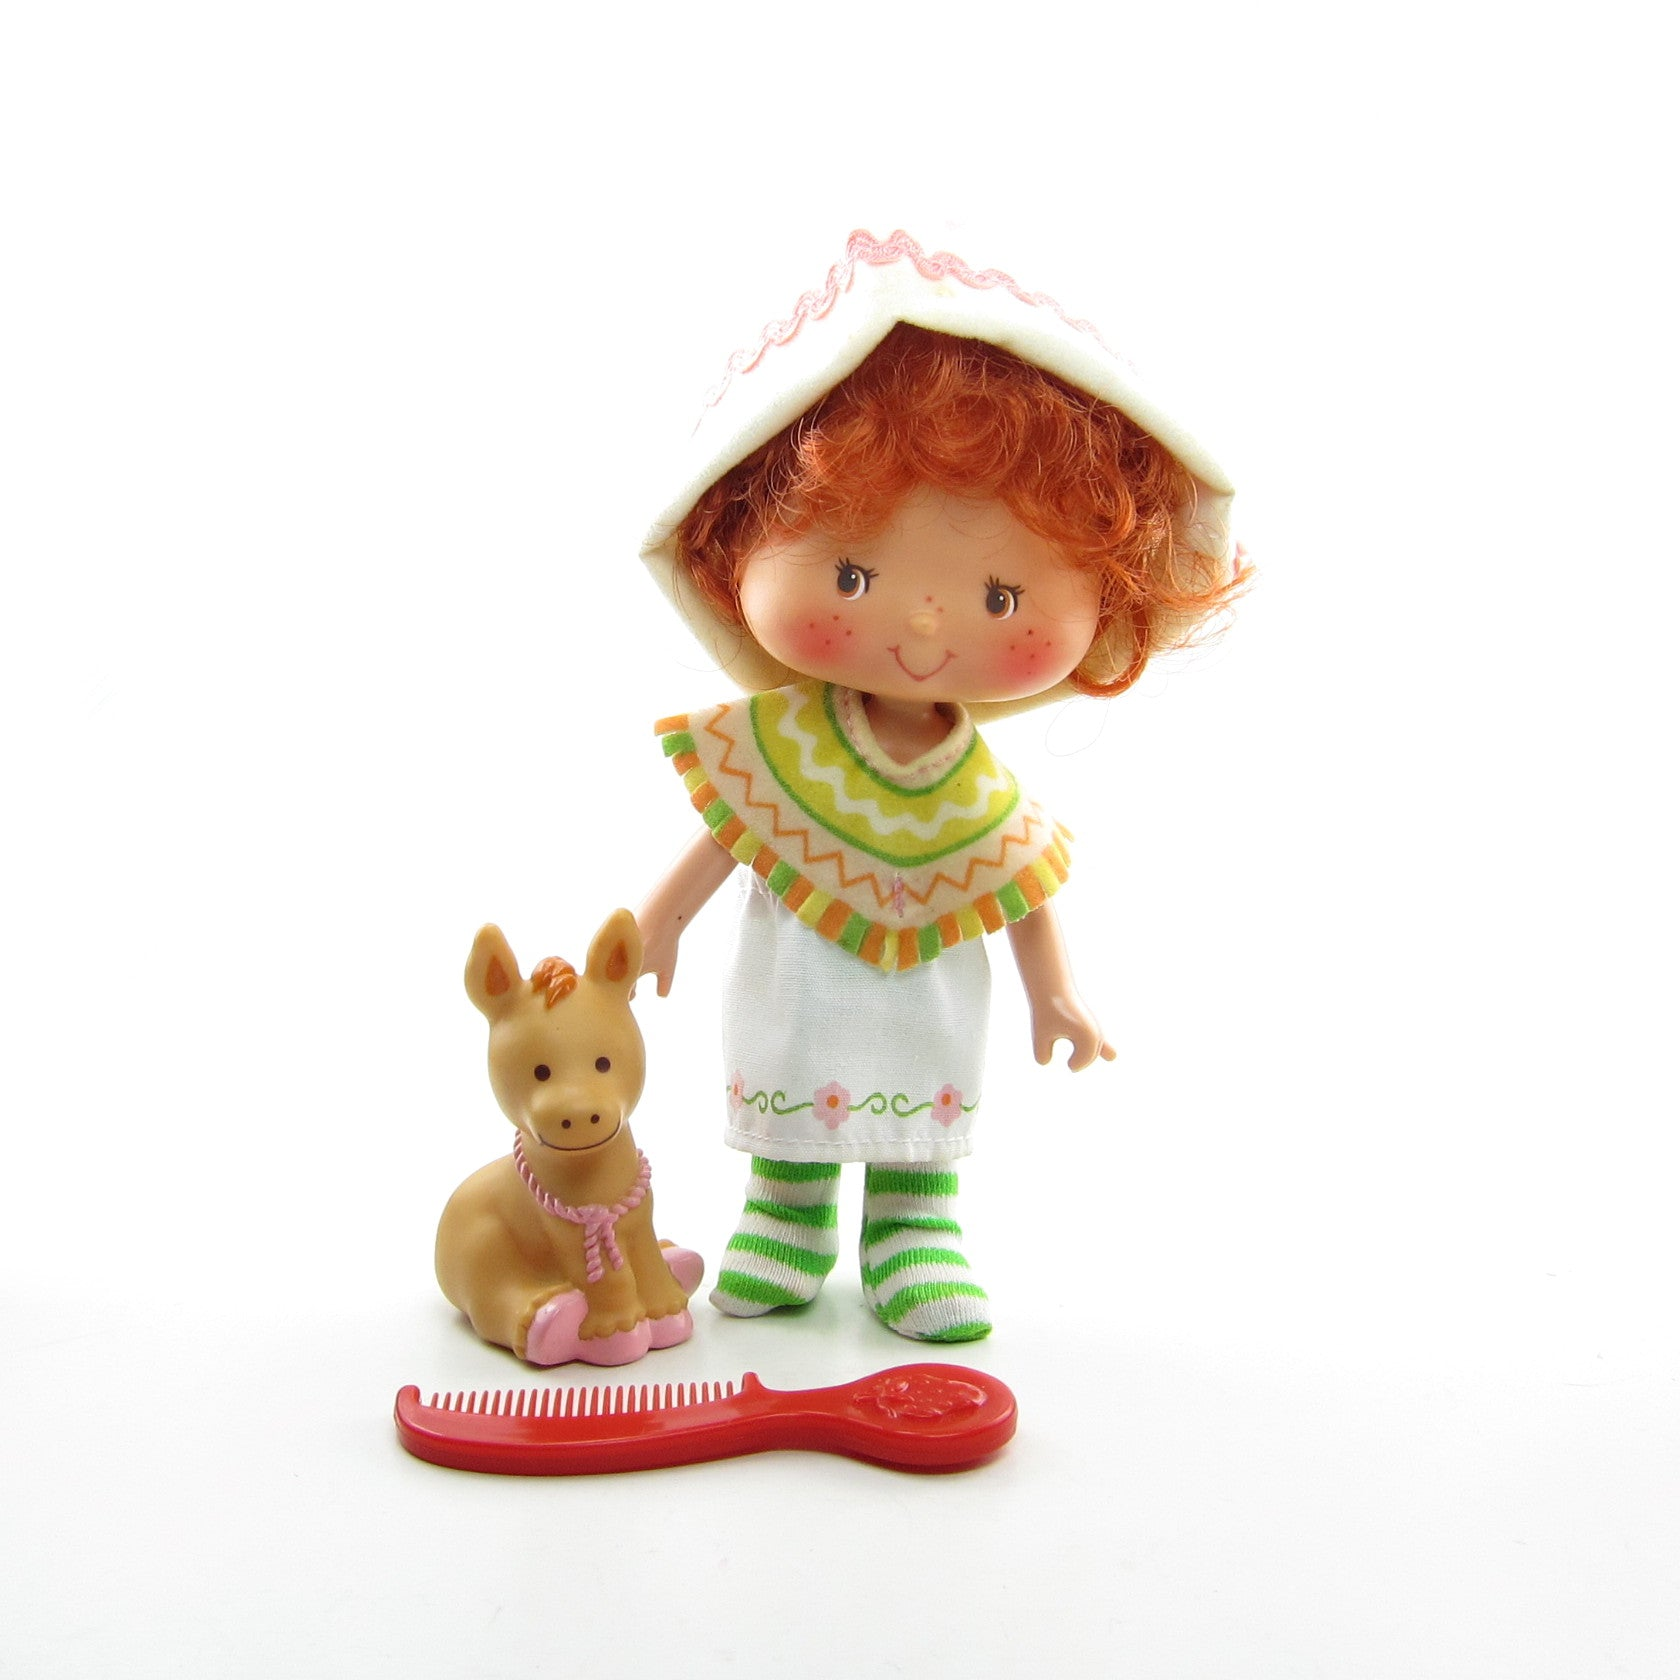 Cafe Ole doll with Burrito donkey pet and berry comb